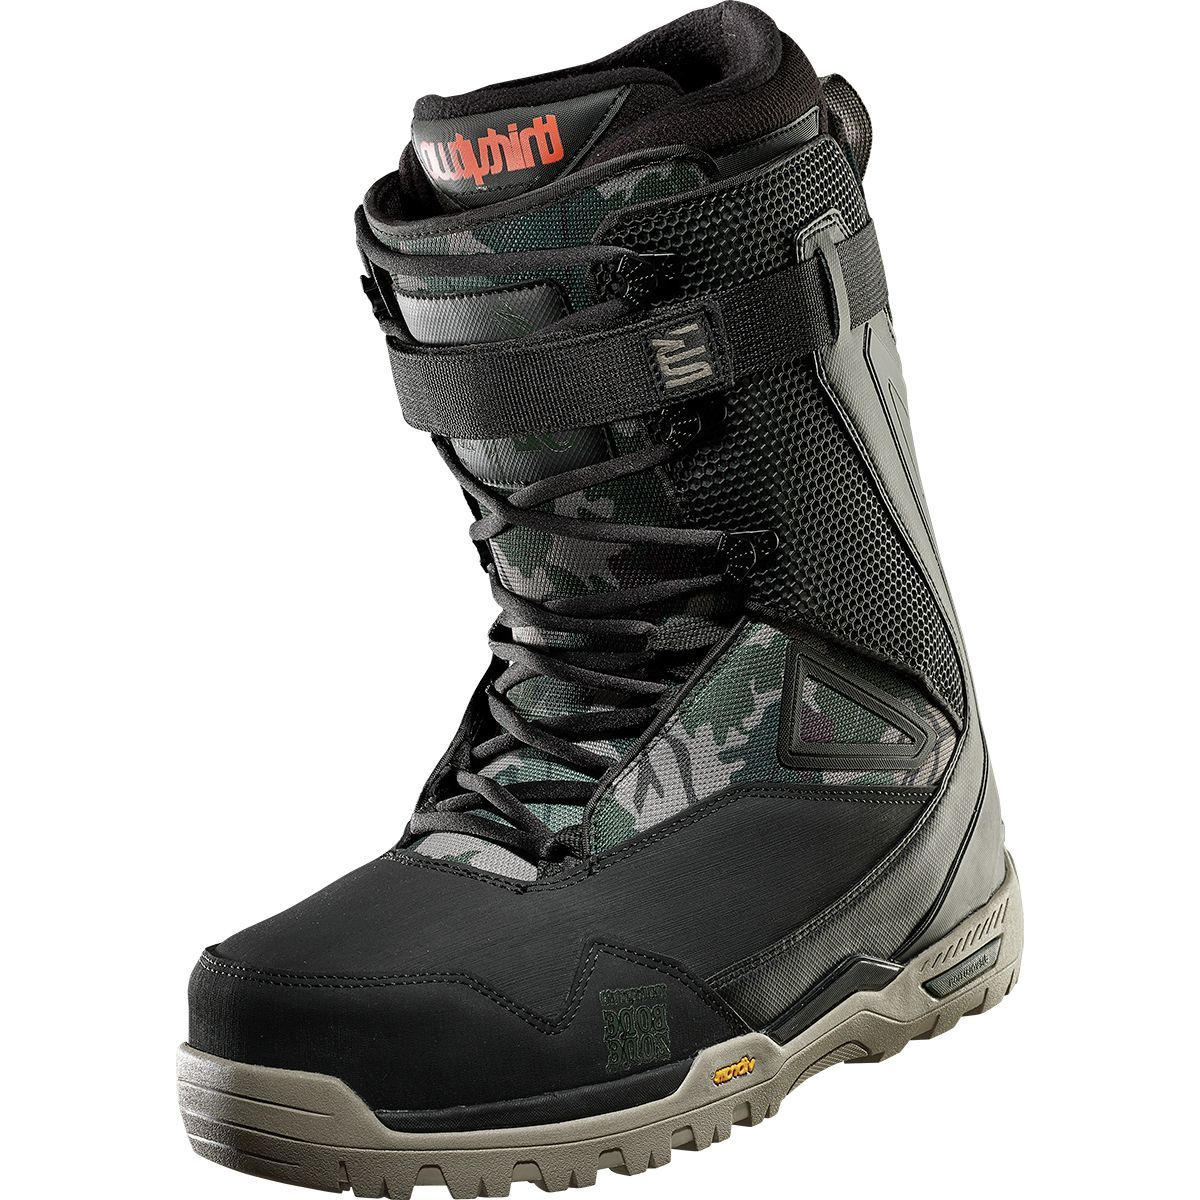 ThirtyTwo TM-Two XLT Bone Zone Snowboard Boot - Men's